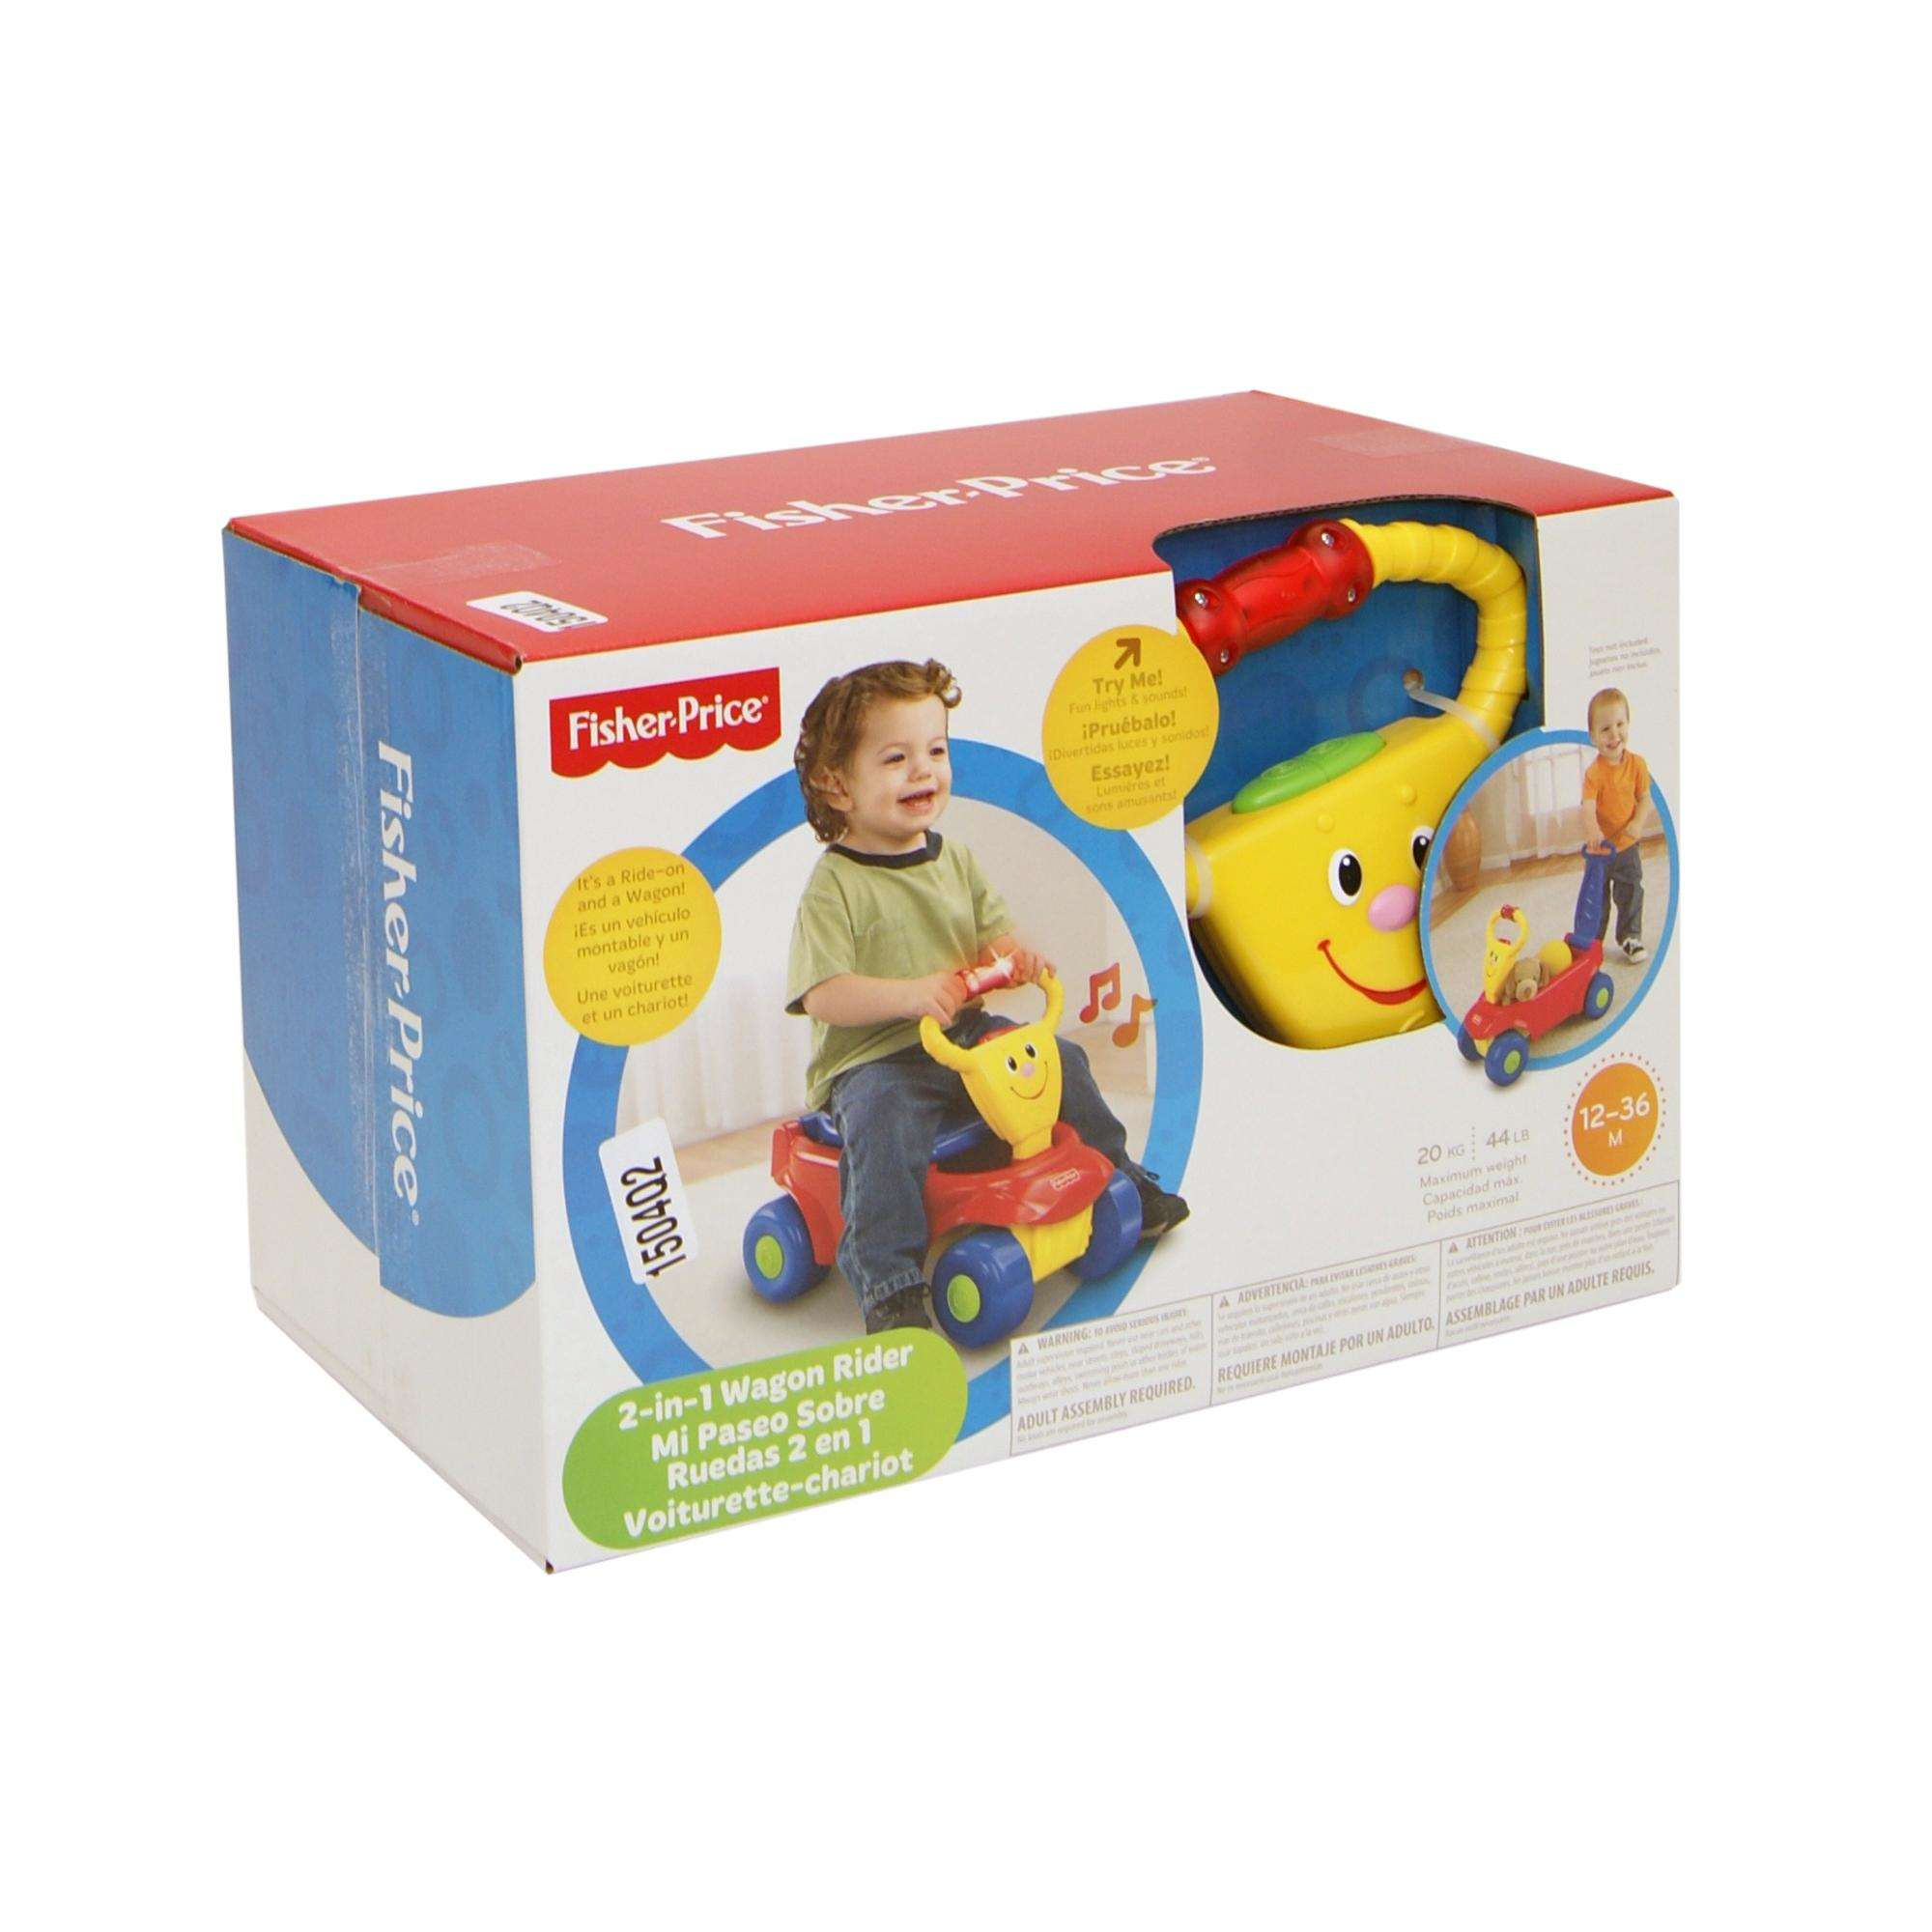 Fisher Price 2 in 1 Wagon Rider Ride Boys Walmart